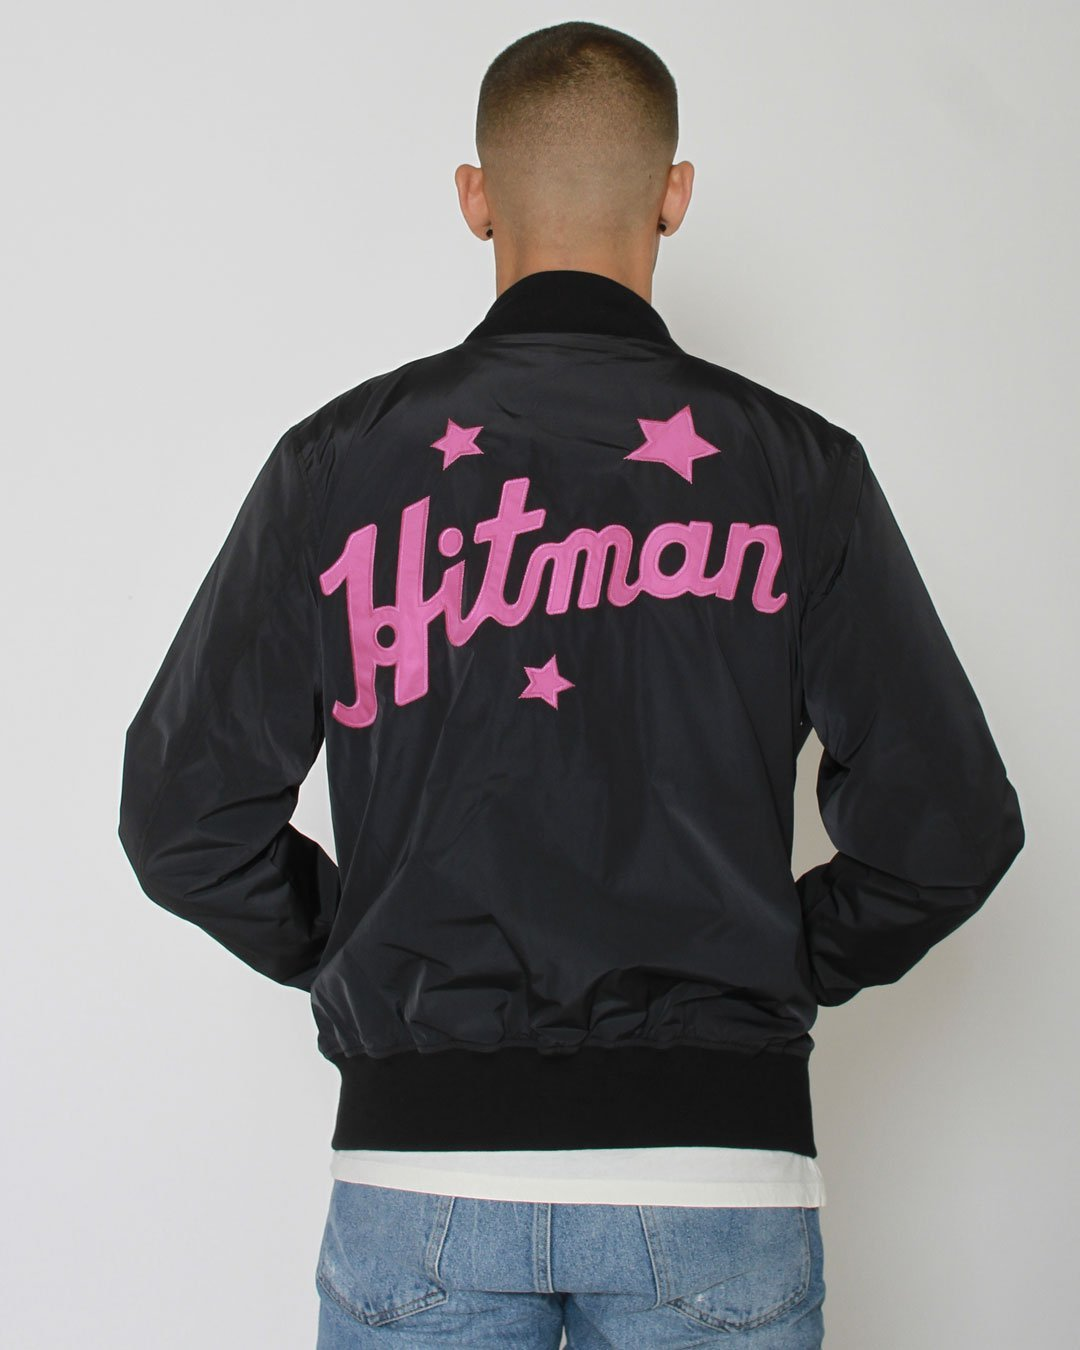 Bret Hart Hitman Stadium Jacket - Roots of Inc dba Roots of Fight